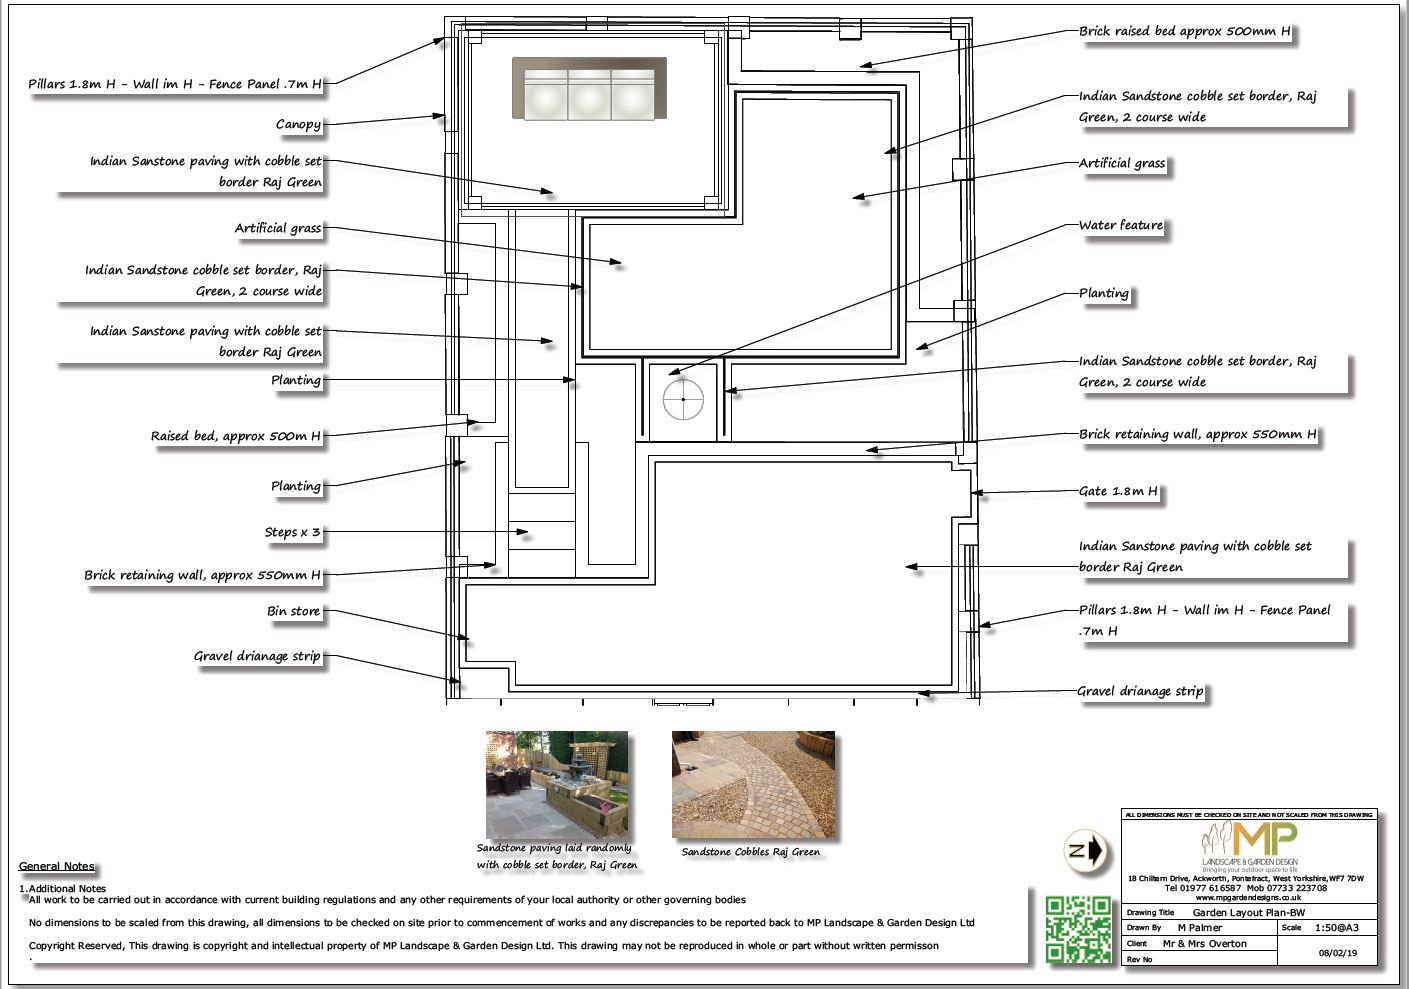 Garden layout plan black and white for a property in Pontefract.